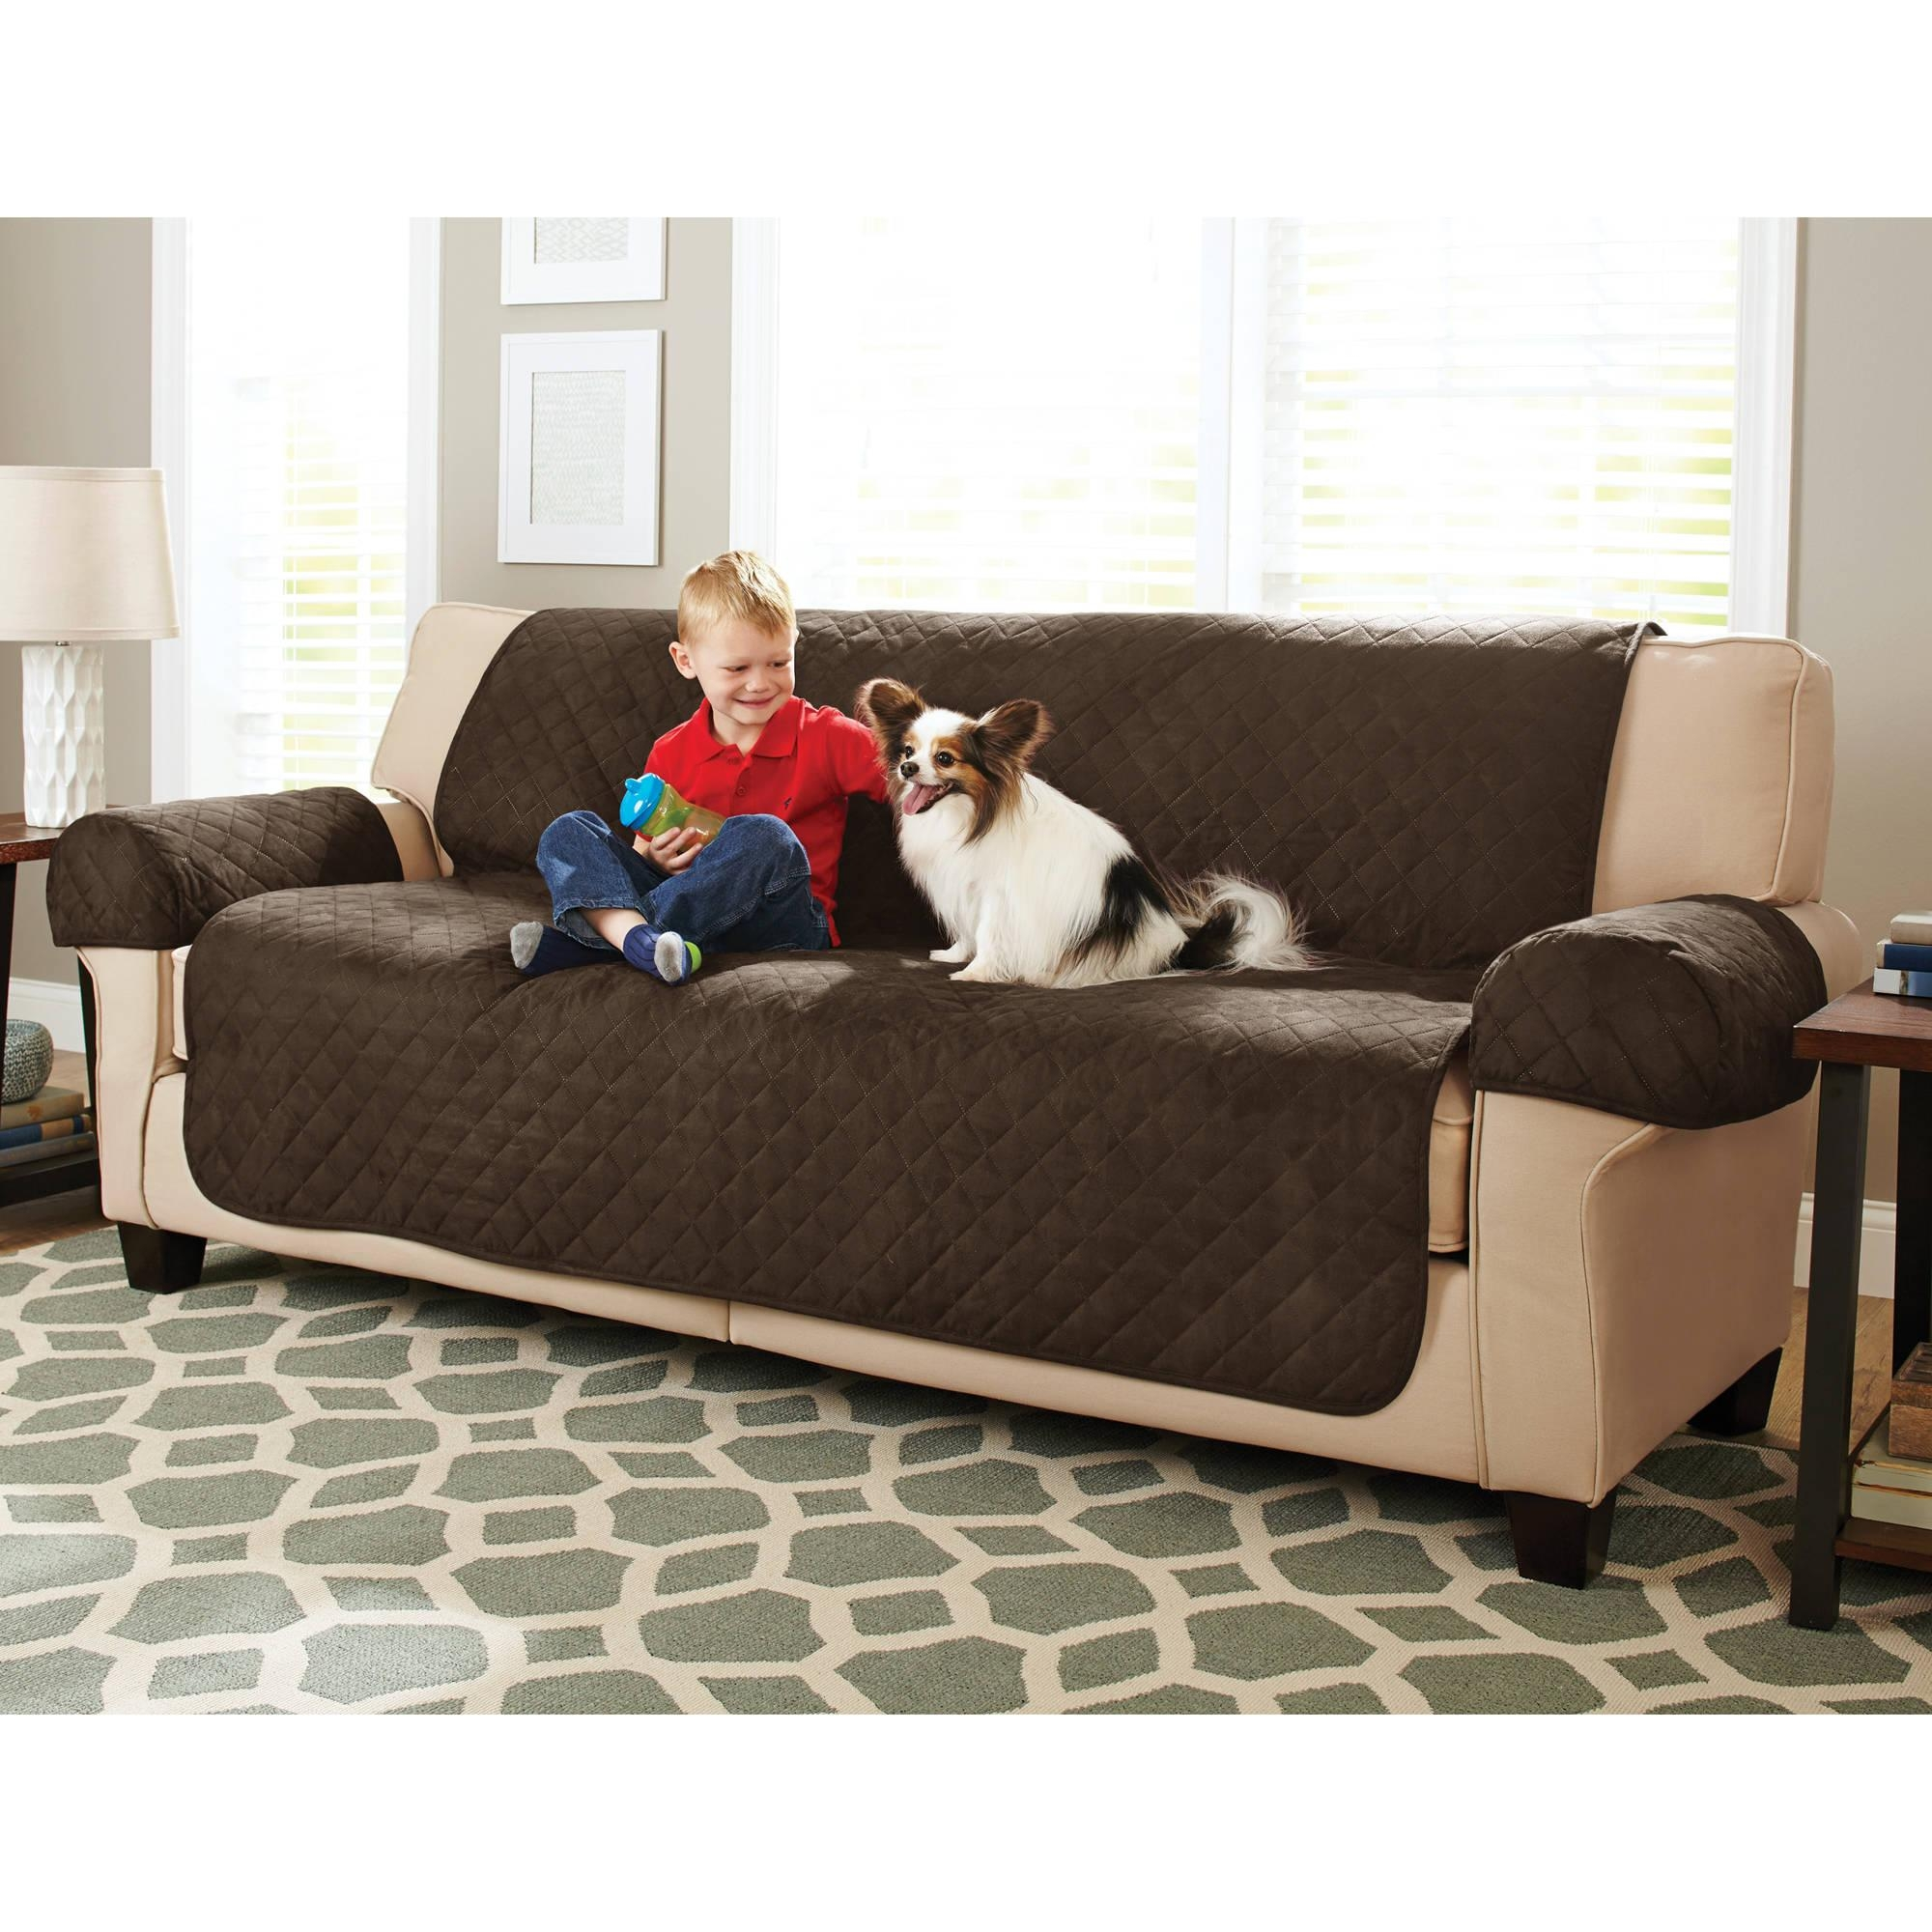 Better Homes And Gardens Waterproof Non Slip Faux Suede Pet With Regard To Suede Slipcovers For Sofas (View 3 of 20)